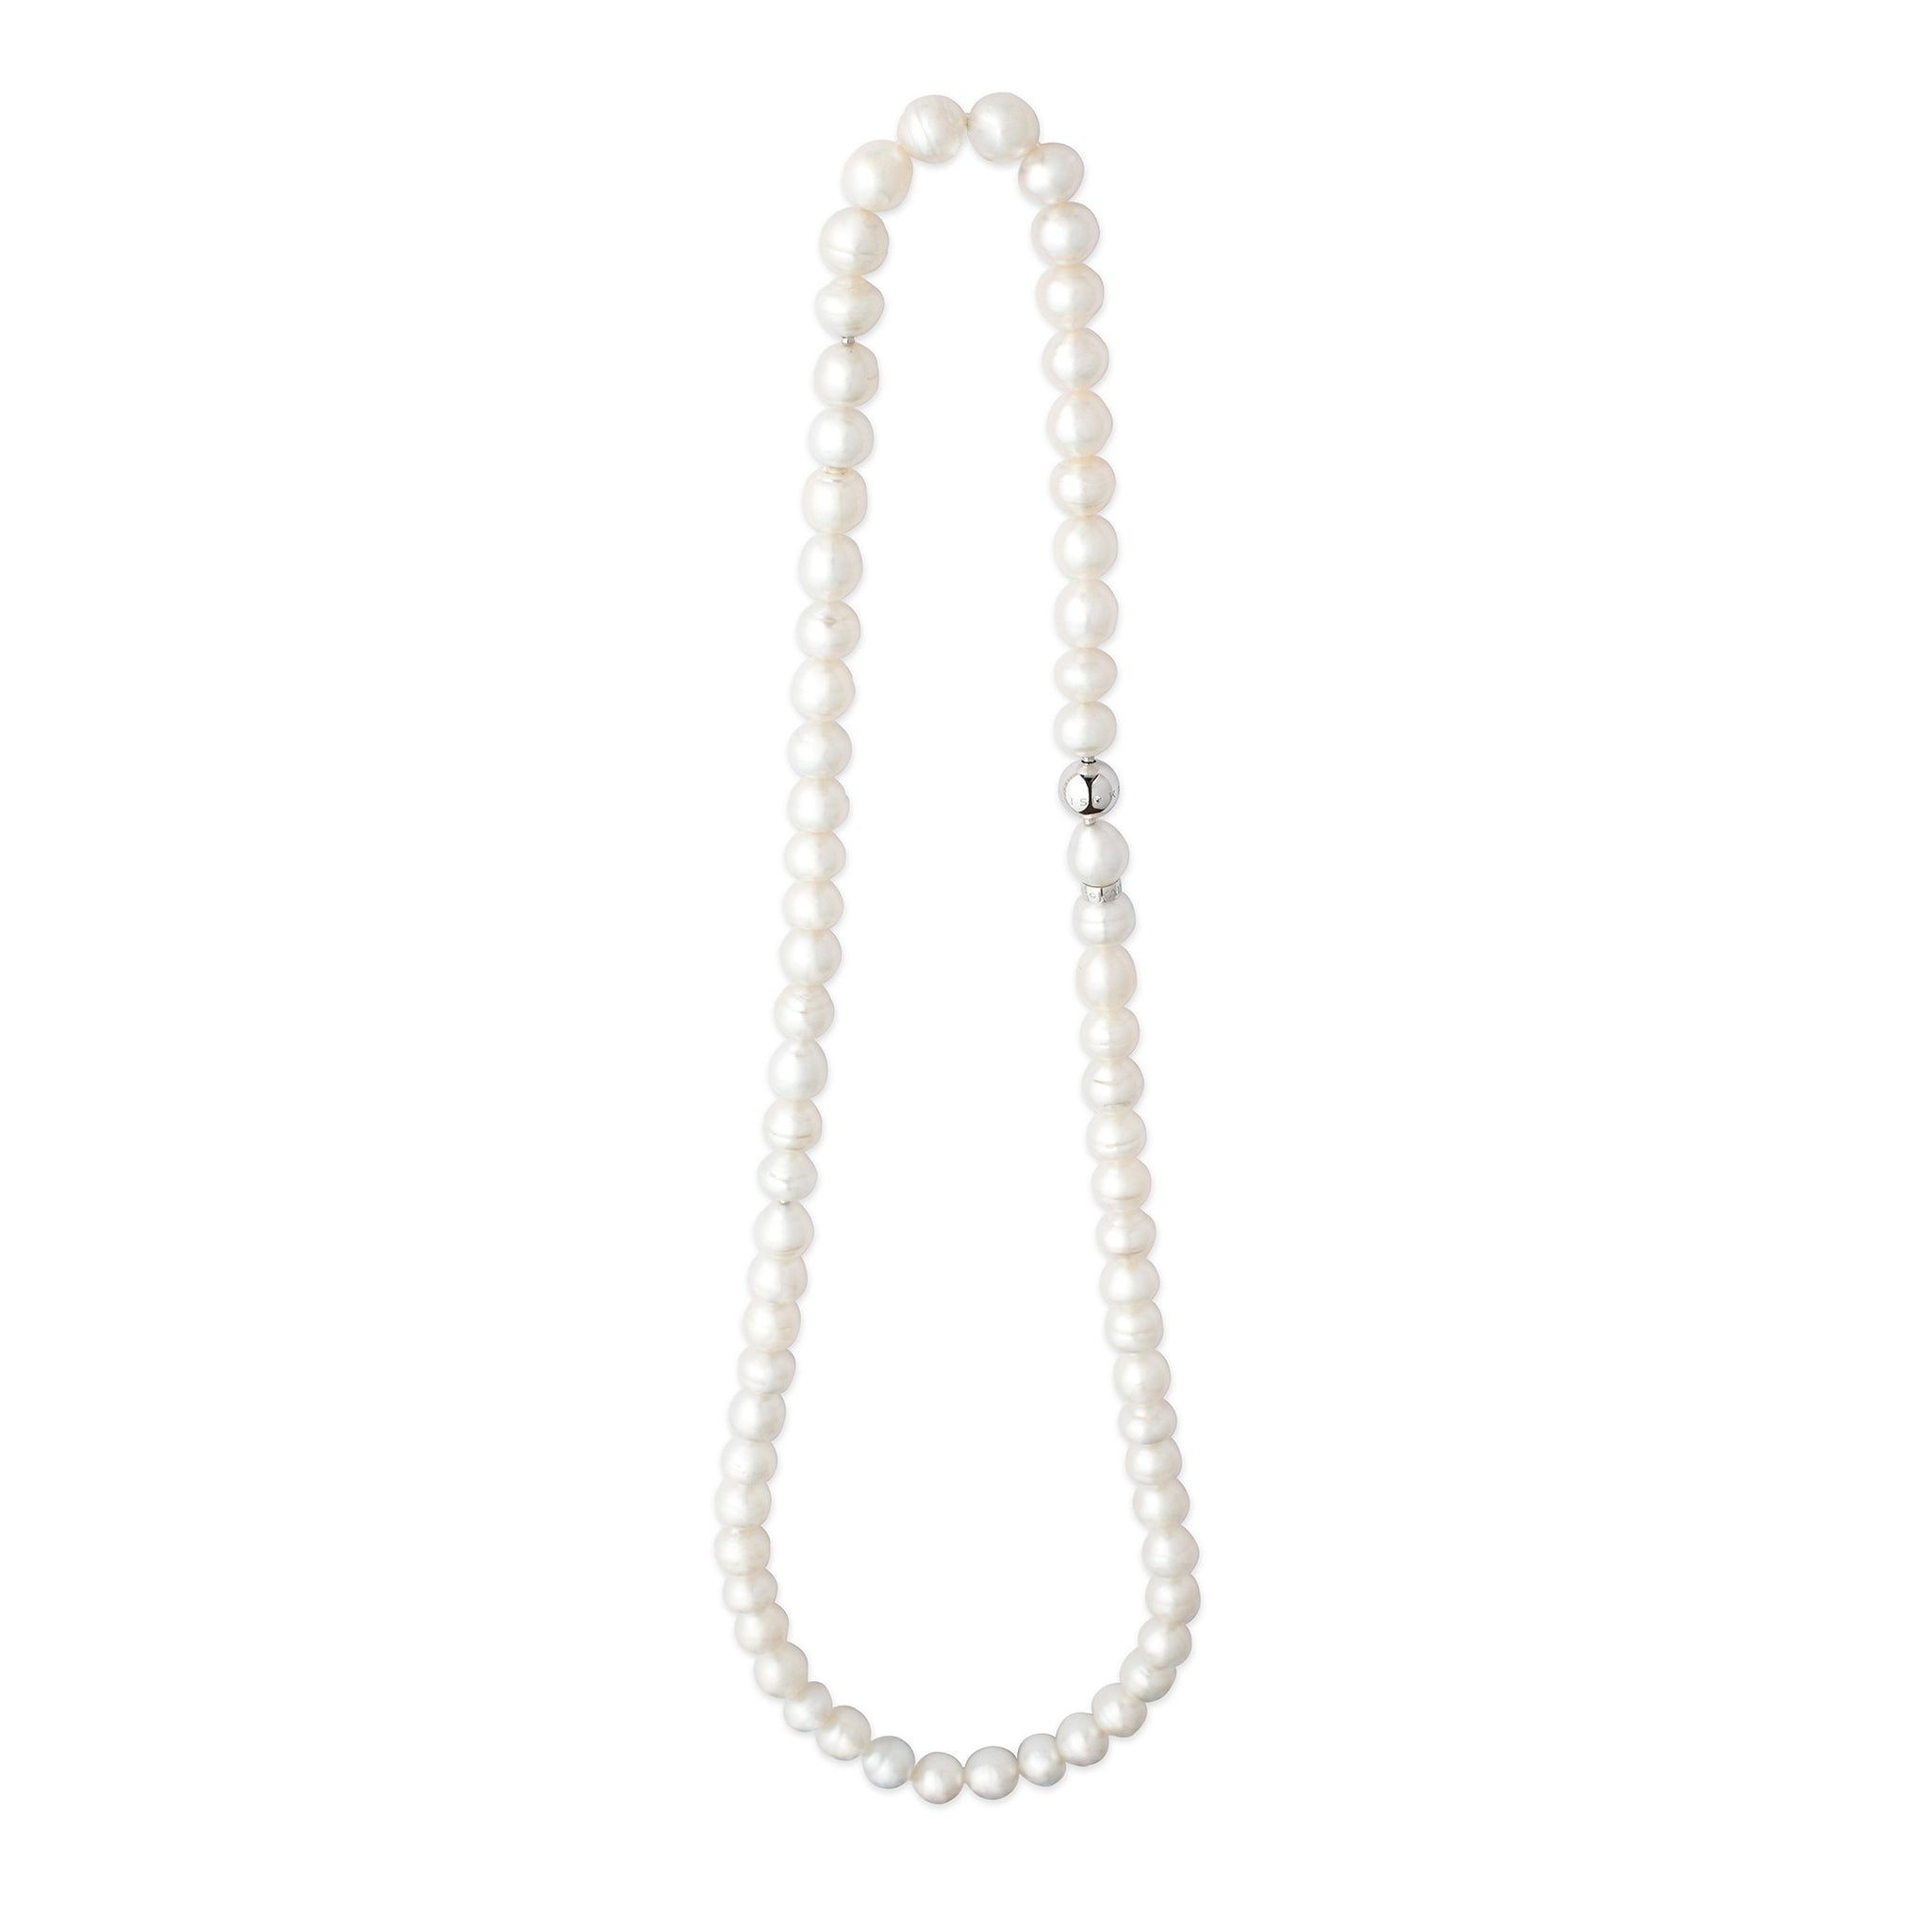 Kailis Jewellery - Pearl Strand - White Gold Clasp